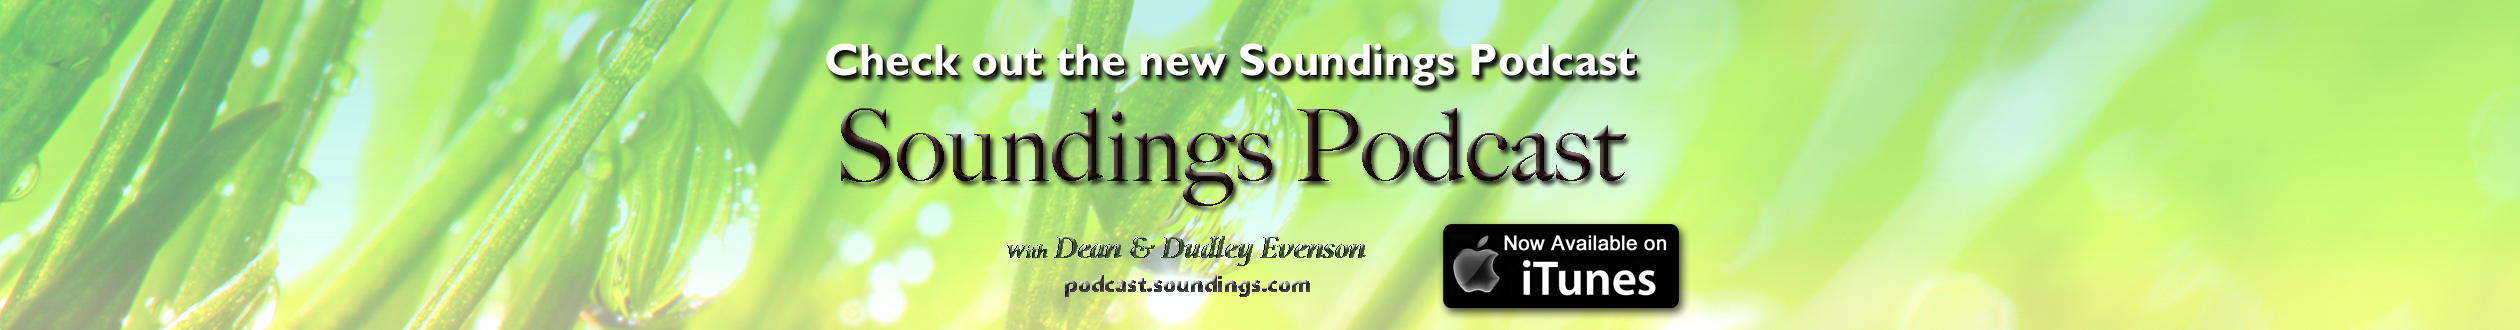 Soundings-Podcast-Slider1_edited-6